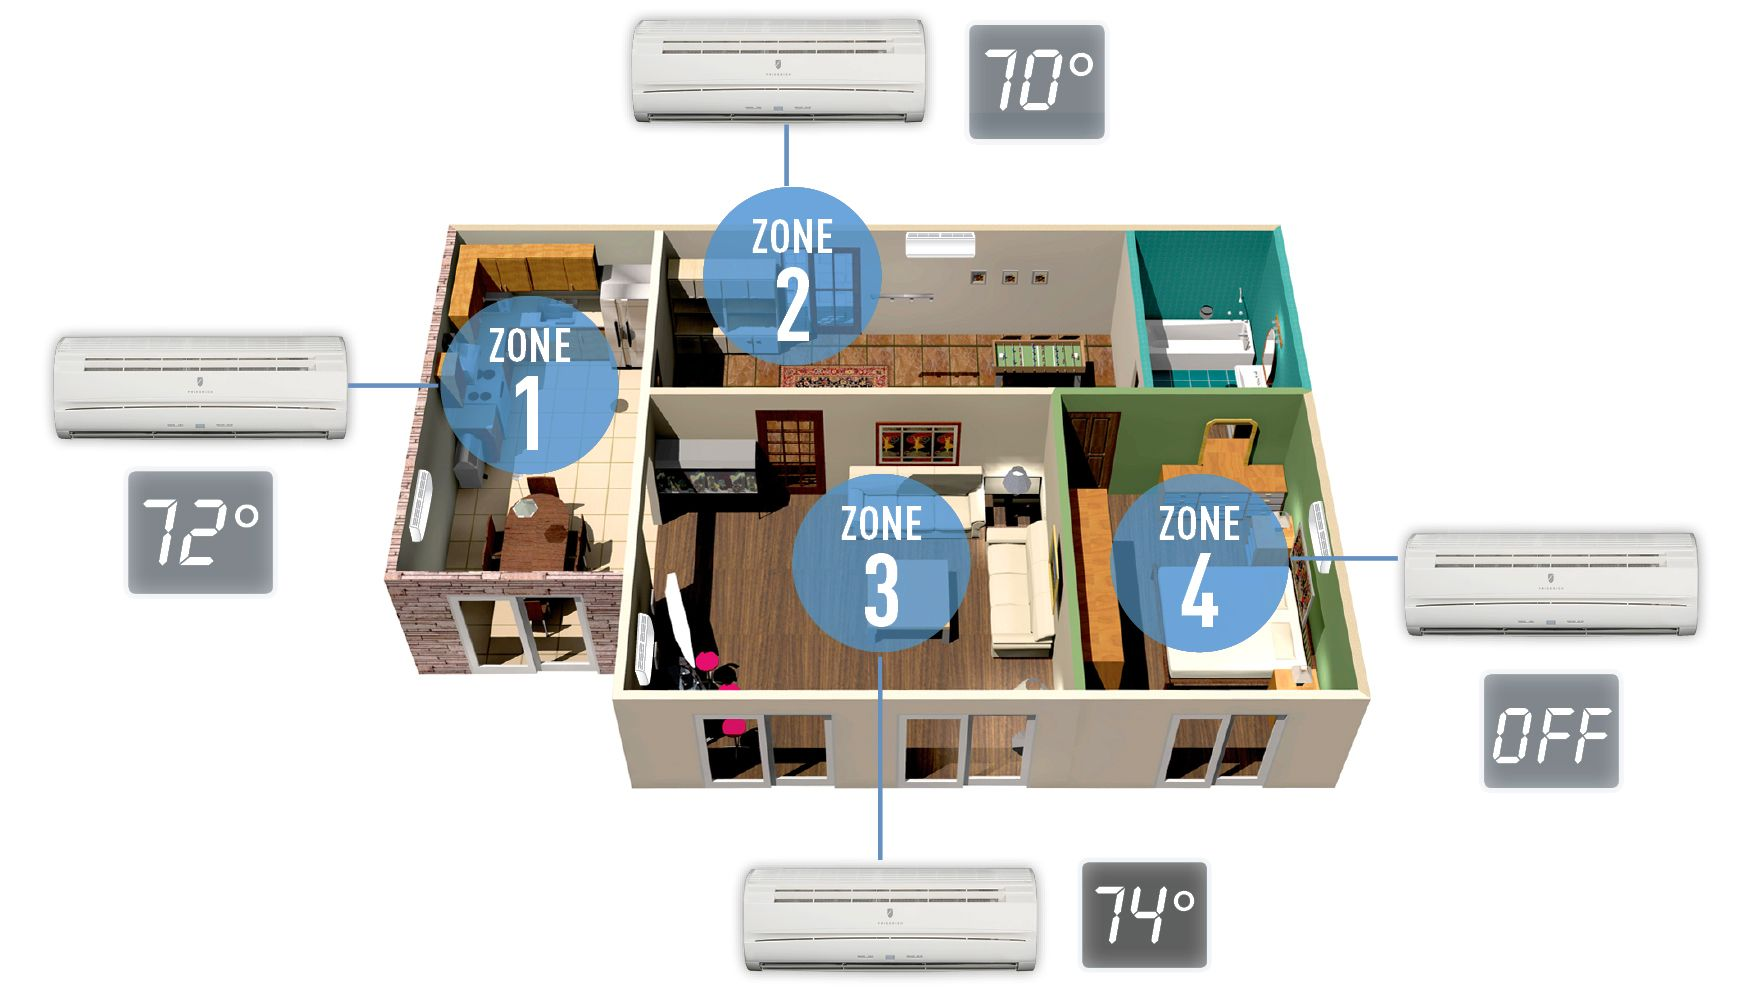 multizoneillustration (With images) Ductless, Heating